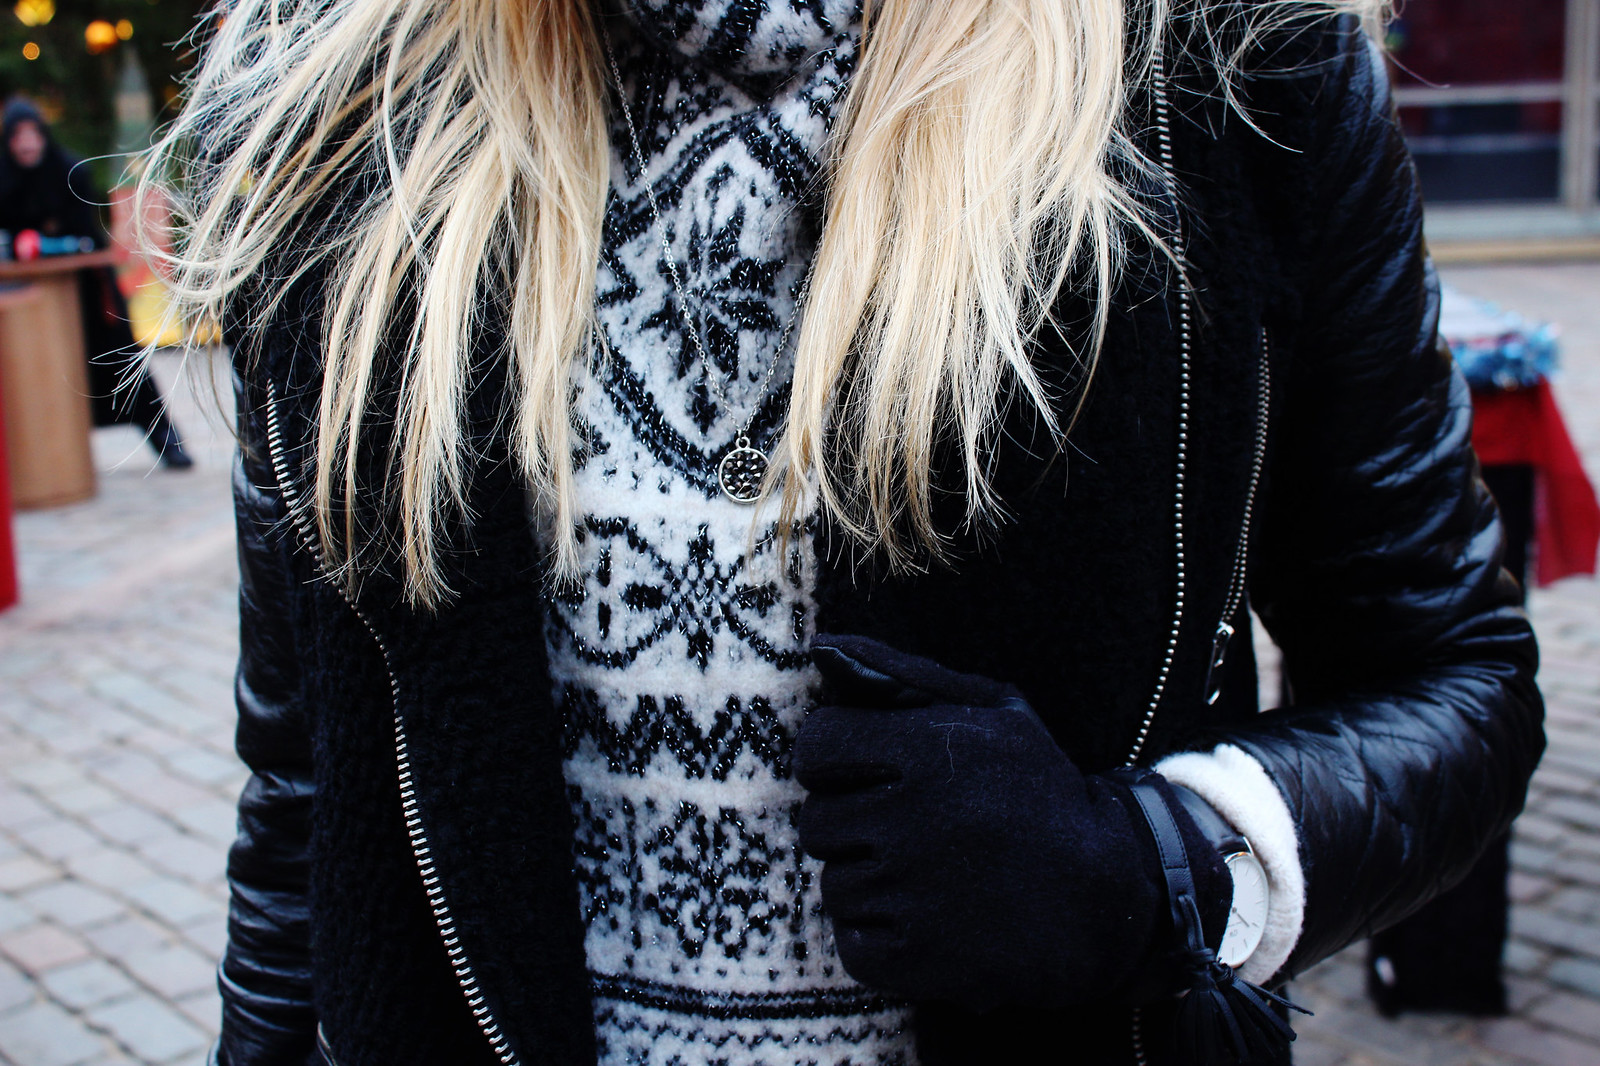 Details of a winter outfit